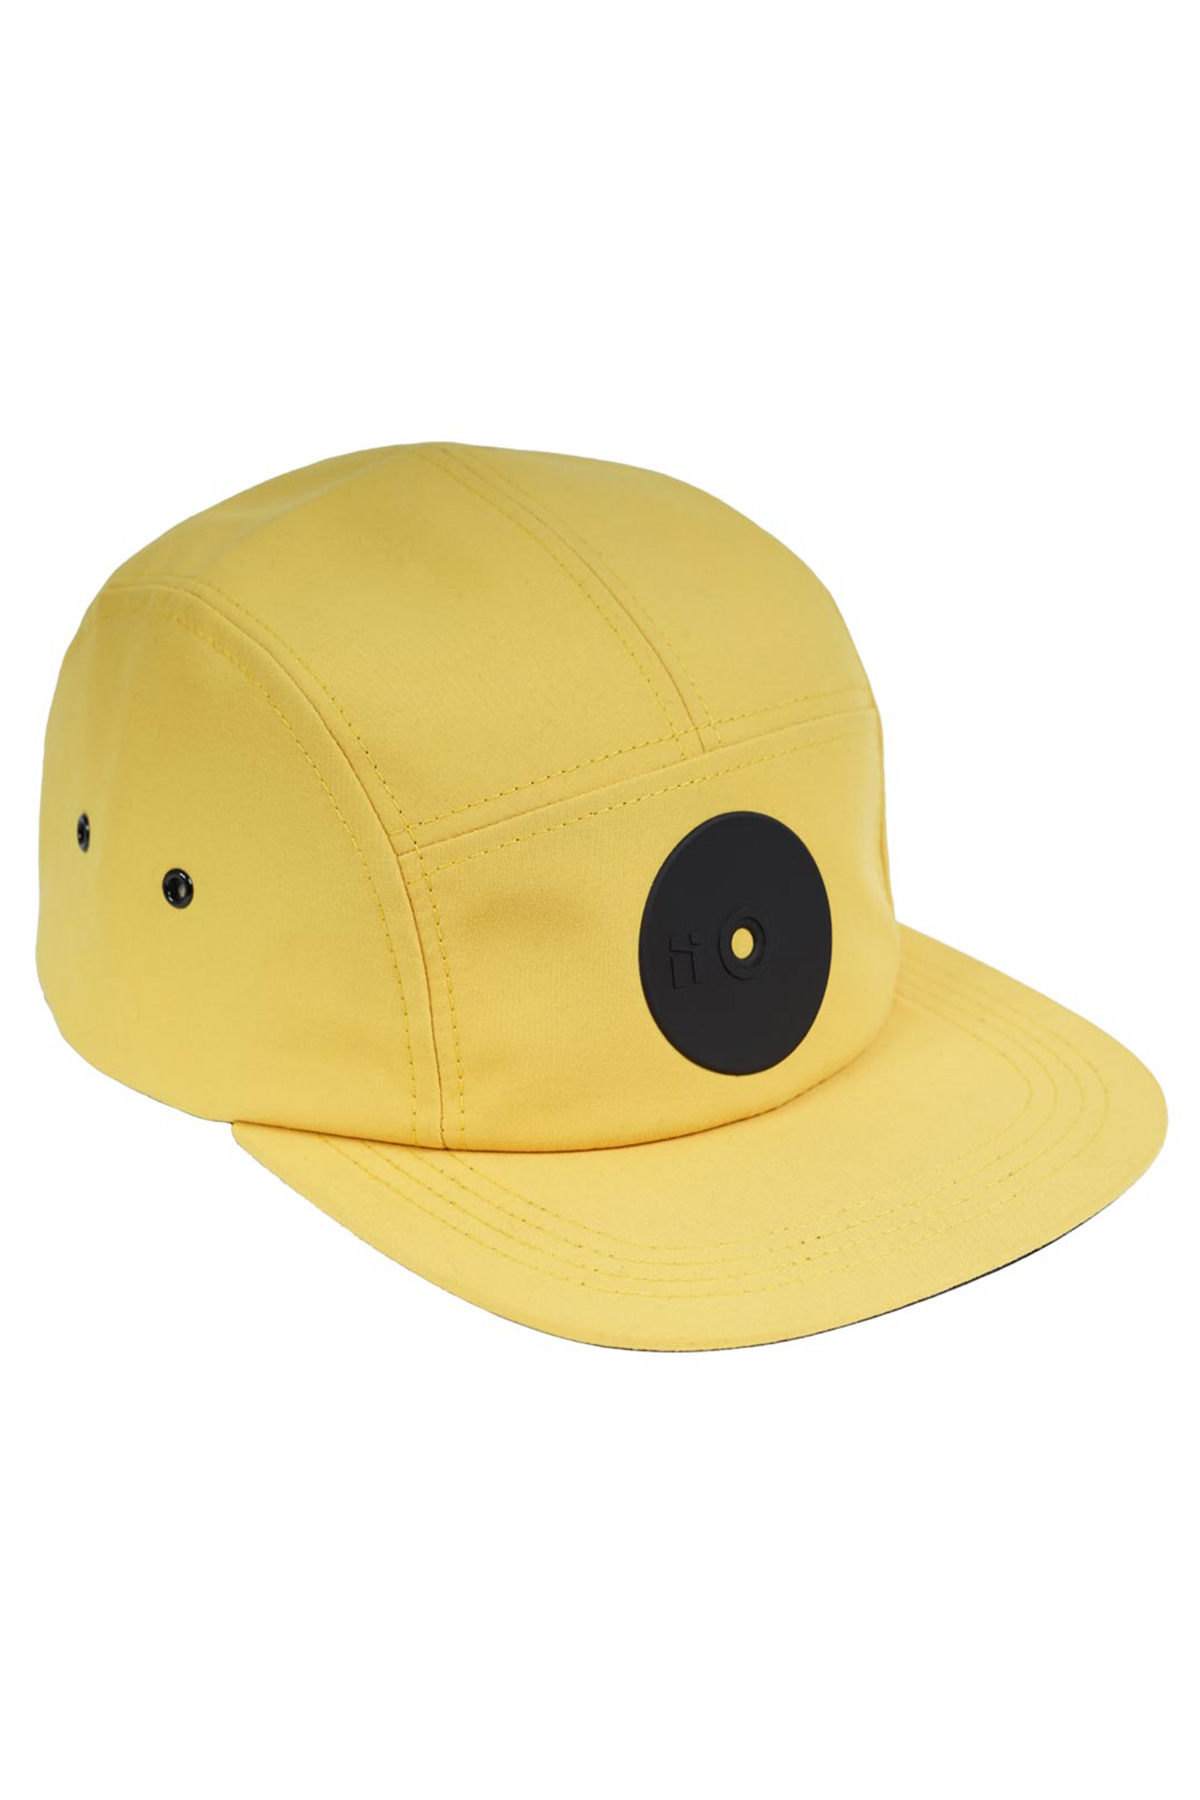 Mr. Serious YELLOW SUPER FAT Cap